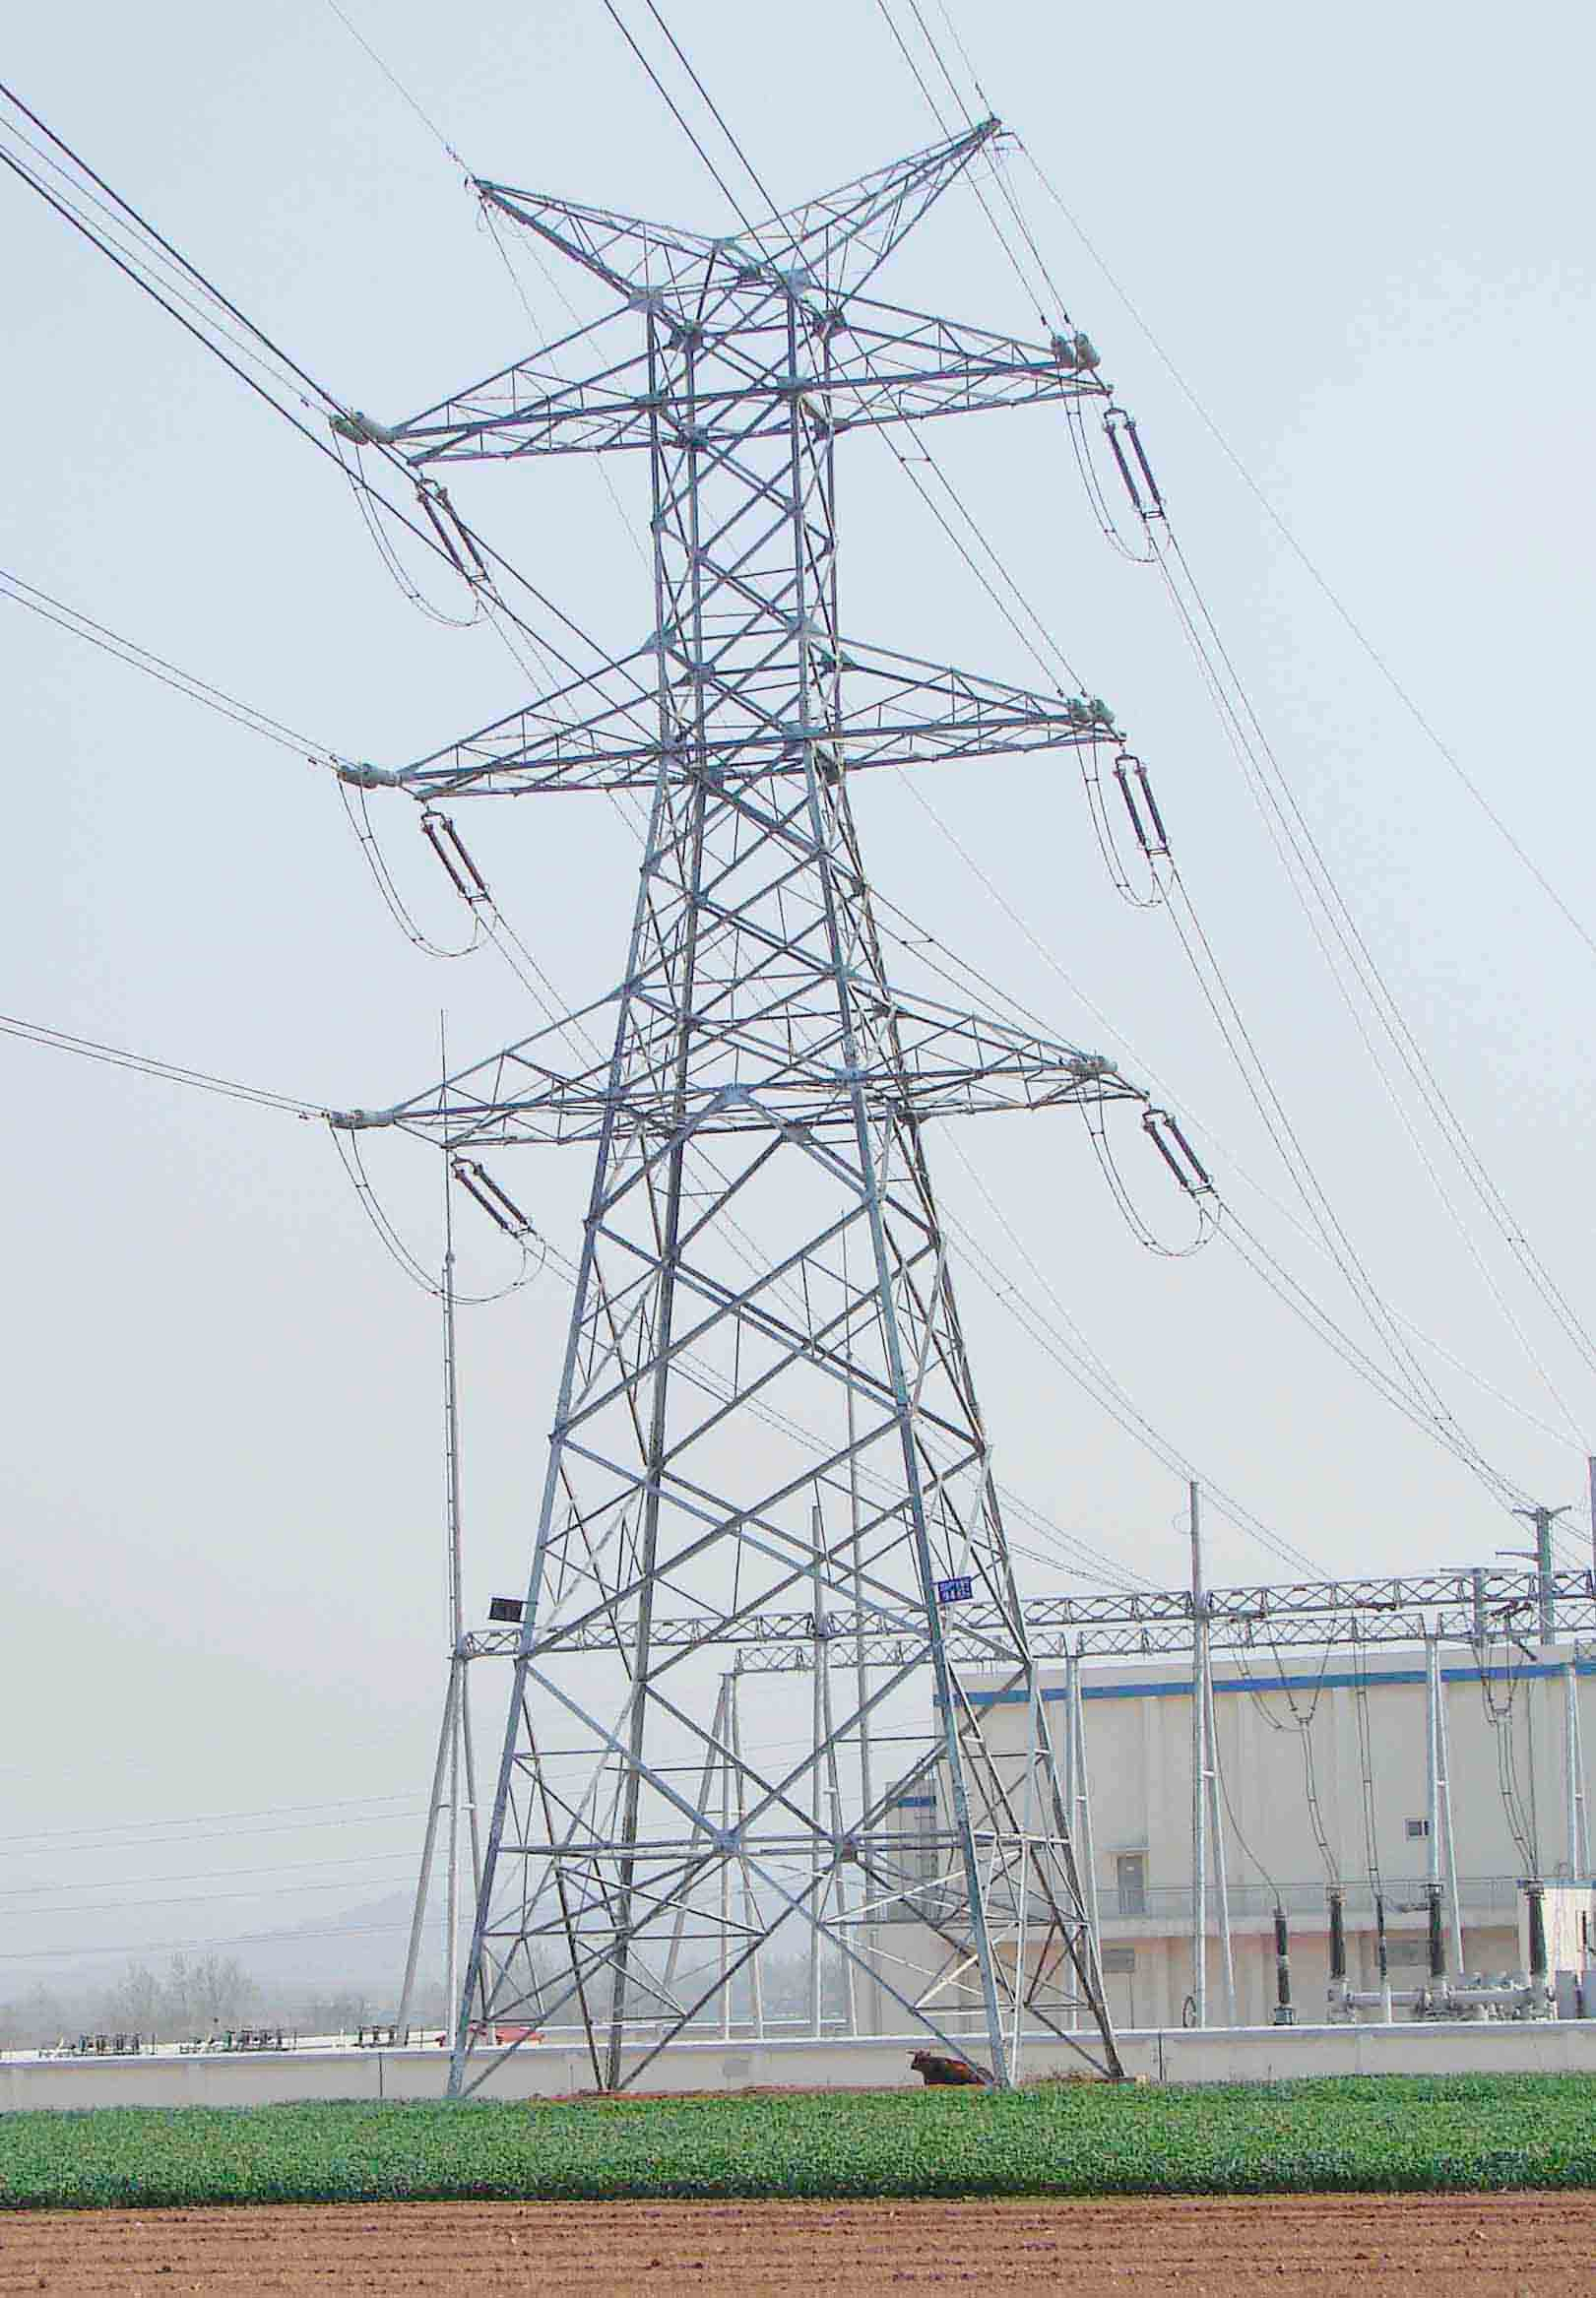 Construction Ehv Transmission Line as well Fbi Devices Similar Pipe Bombs Found Power Lines furthermore File Mickey Mouse shaped transmission tower Celebration FL in addition 220kv Power Transmission Tower Qingdao China 1021666 together with How Do You Determine Power Flow Direction In A Transmission Line. on power line tower types